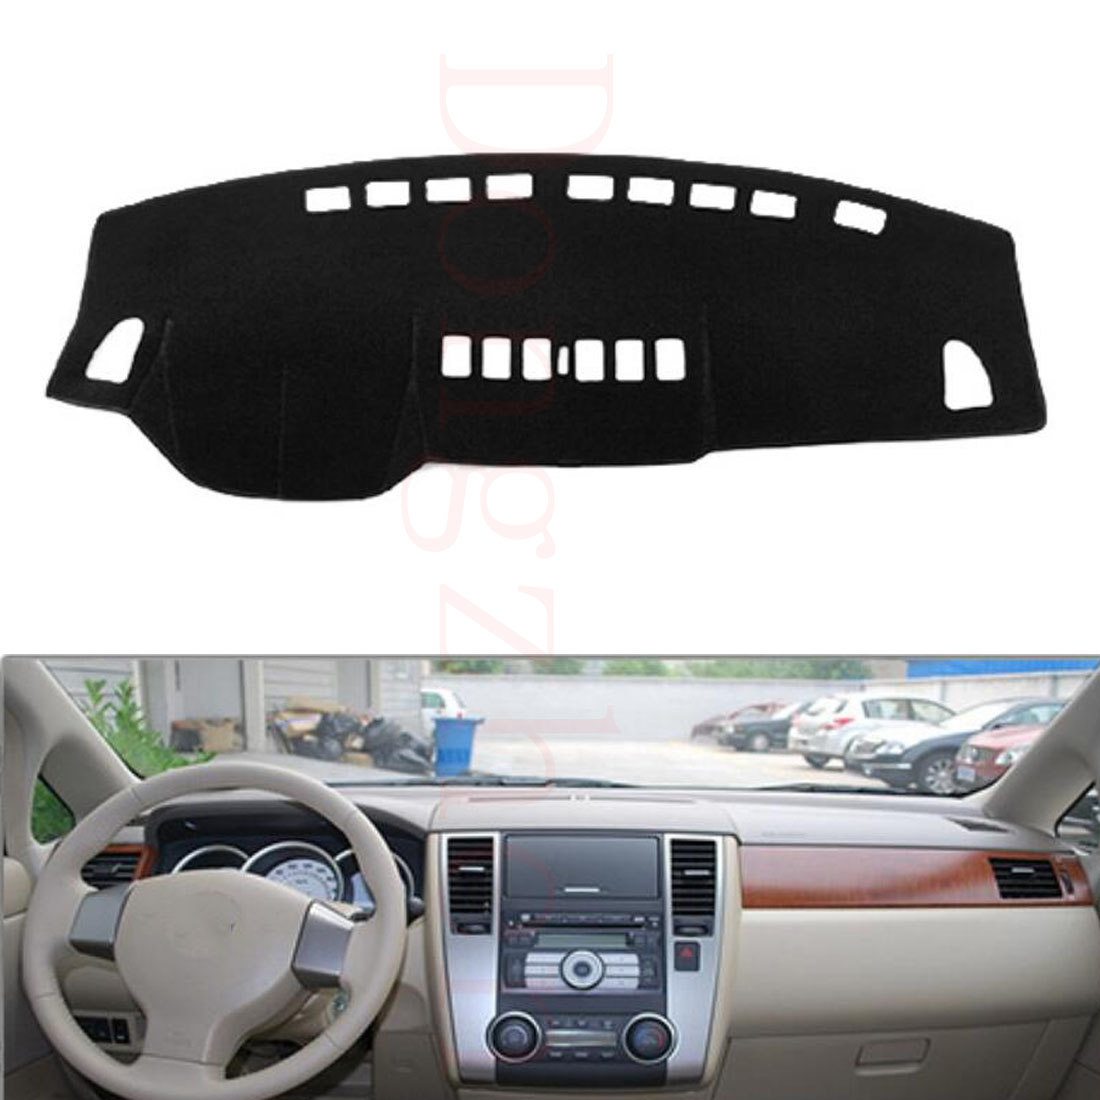 Dongzhen Fit For Nissan Tiida 2005 to 2010 Car Dashboard Cover Avoid Light Pad Instrument Platform Dash Board Cover ветровики prestige nissan tiida hb 04